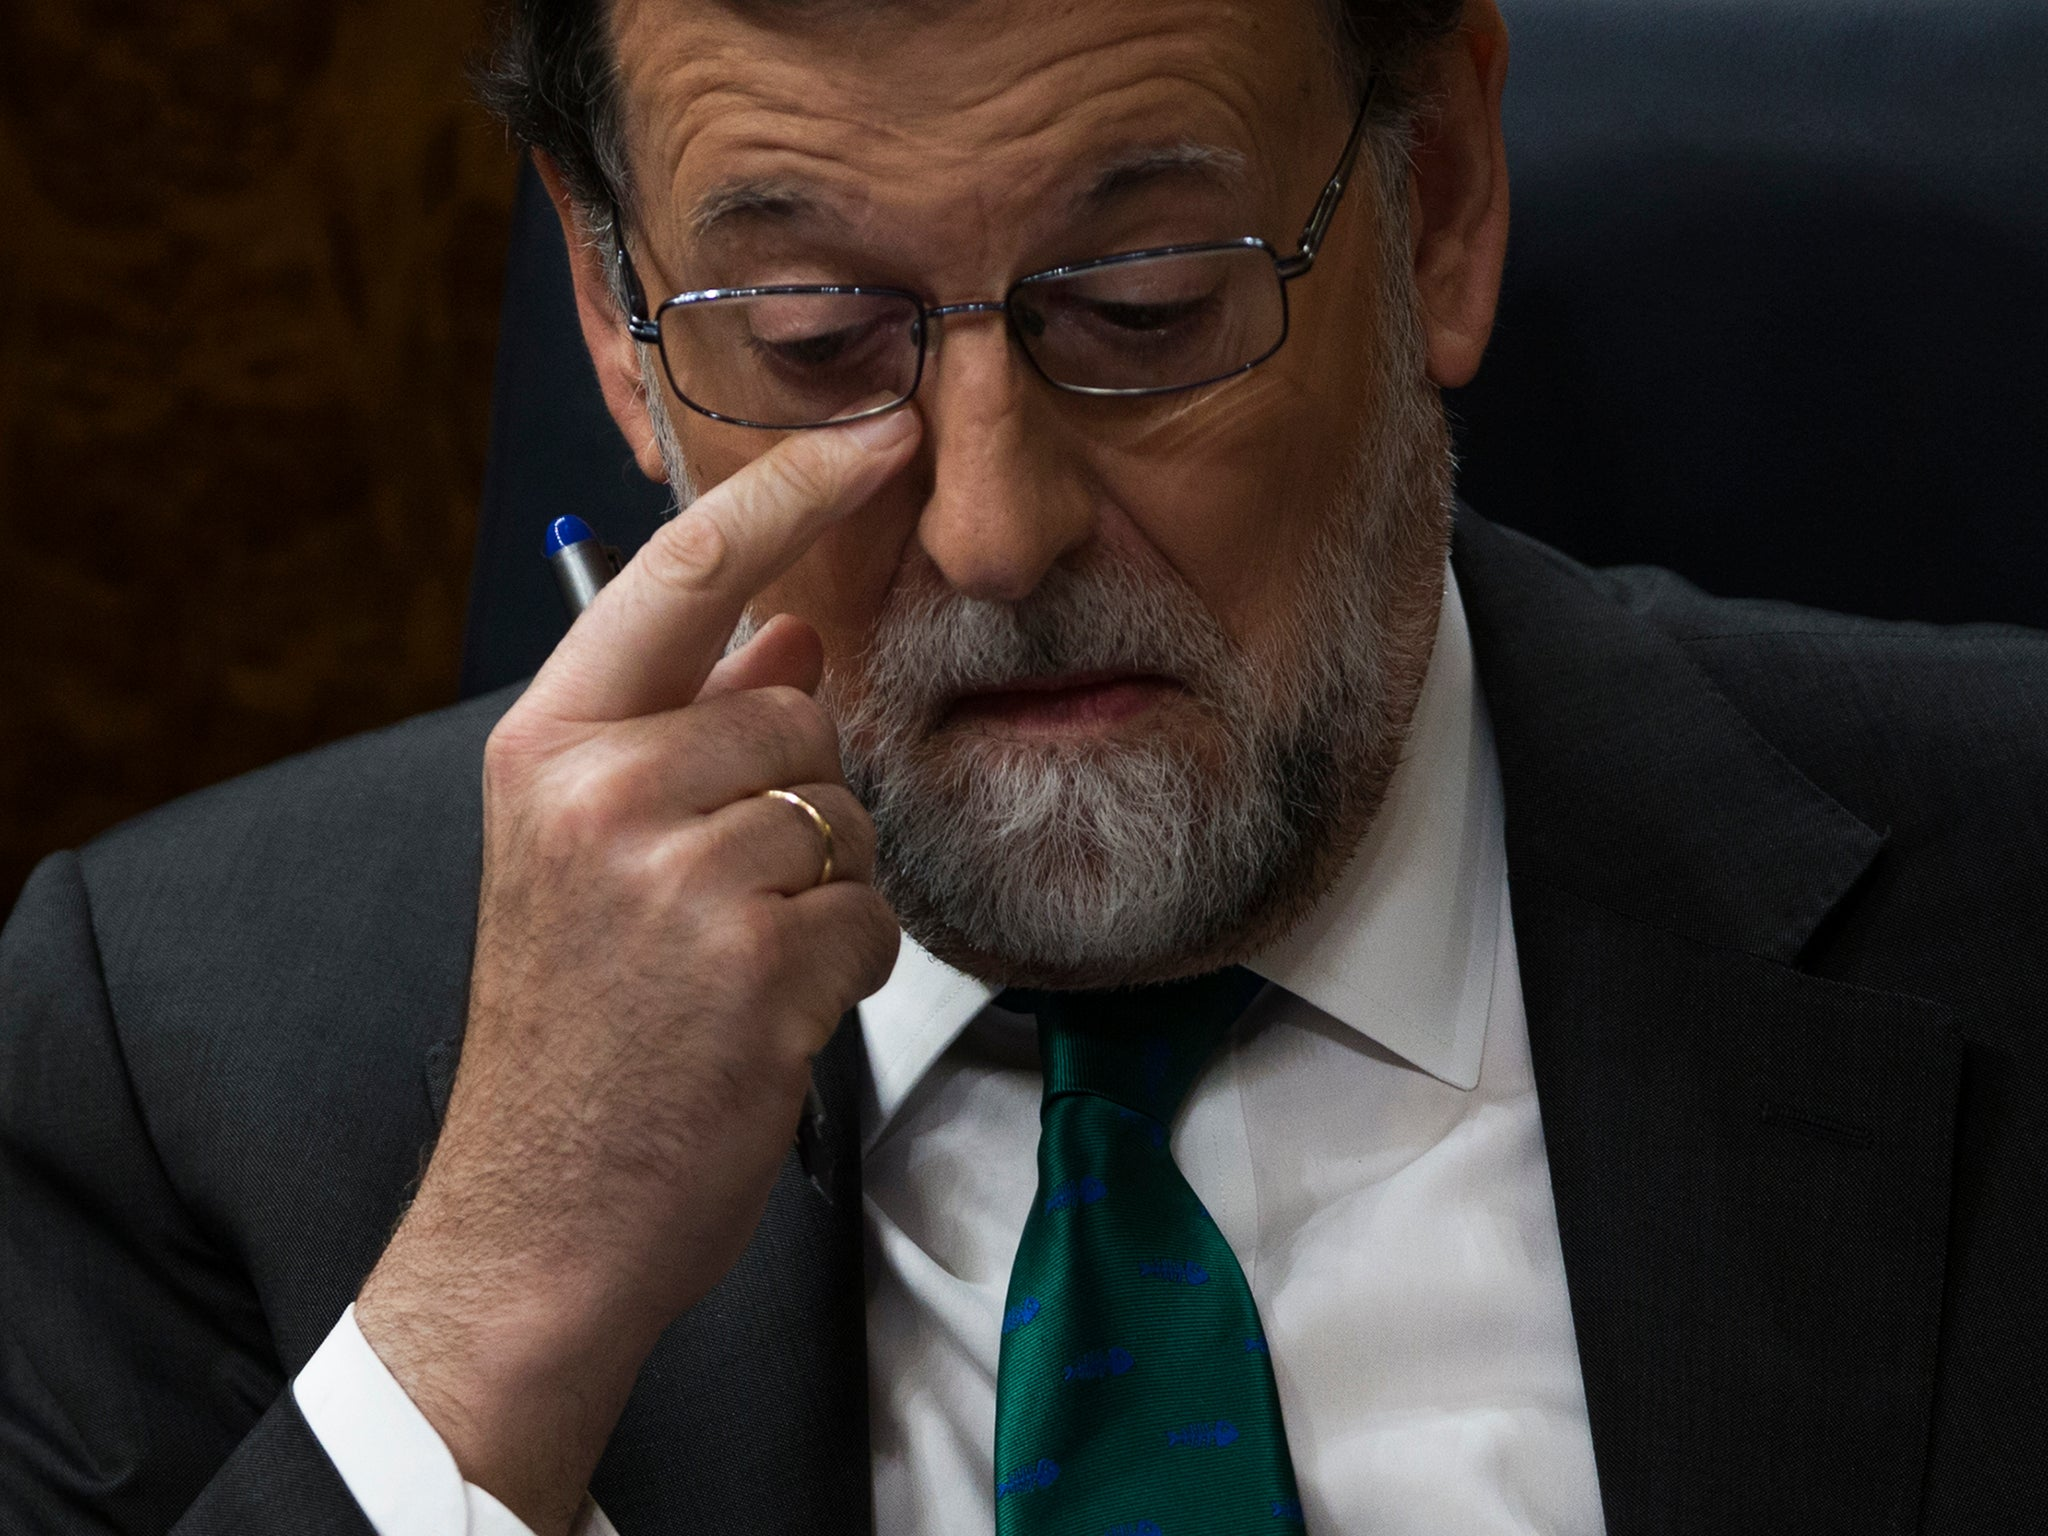 Spain's prime minister Rajoy set to be forced out as Basque party throws support behind no-confidence vote